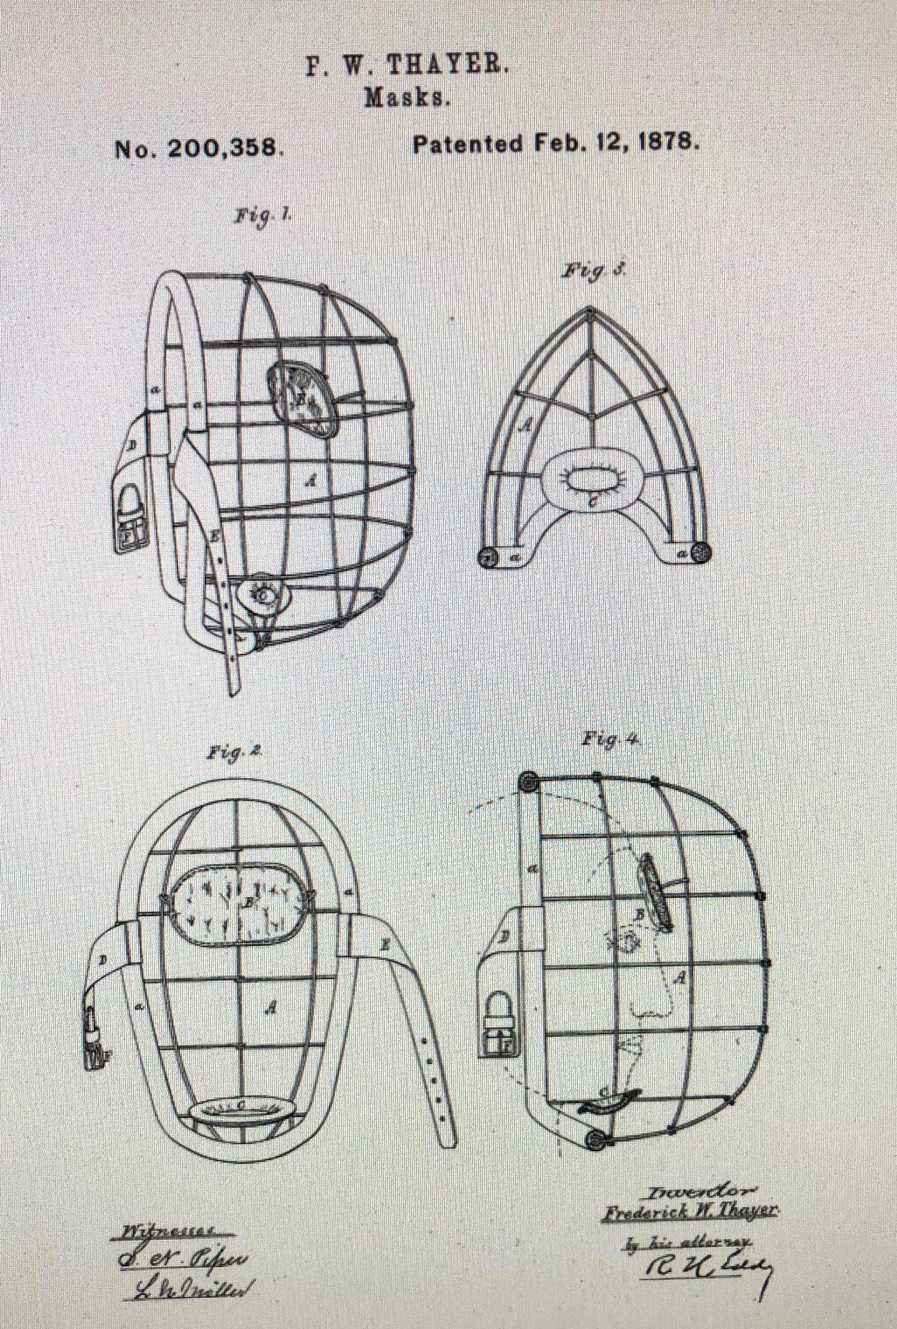 Fred Thayer catcher's mask patent